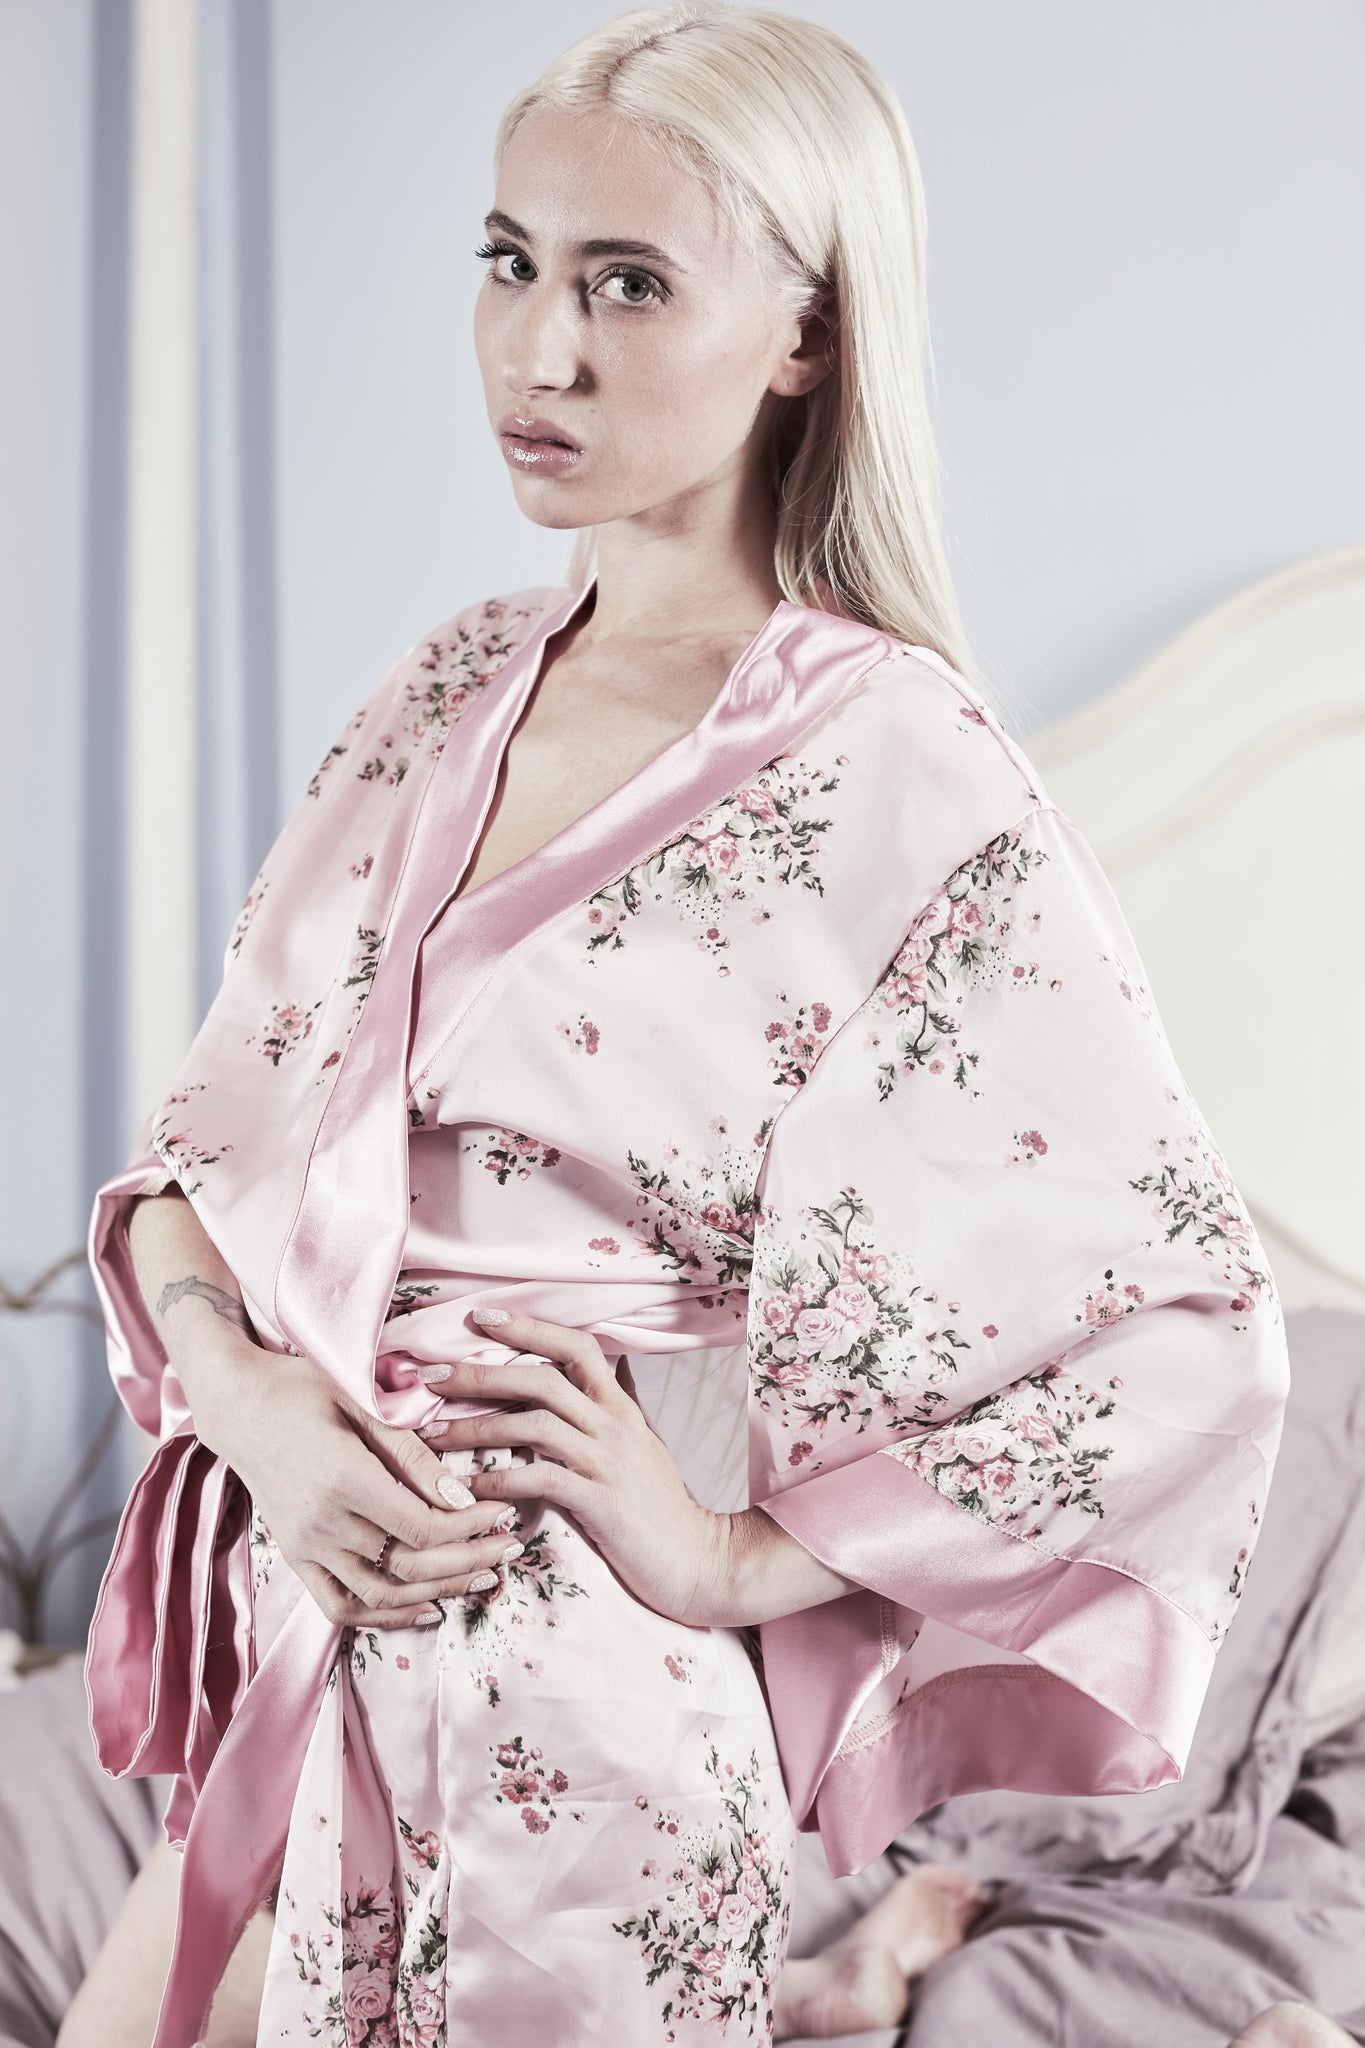 Flower printed satin robe for bridesmaids